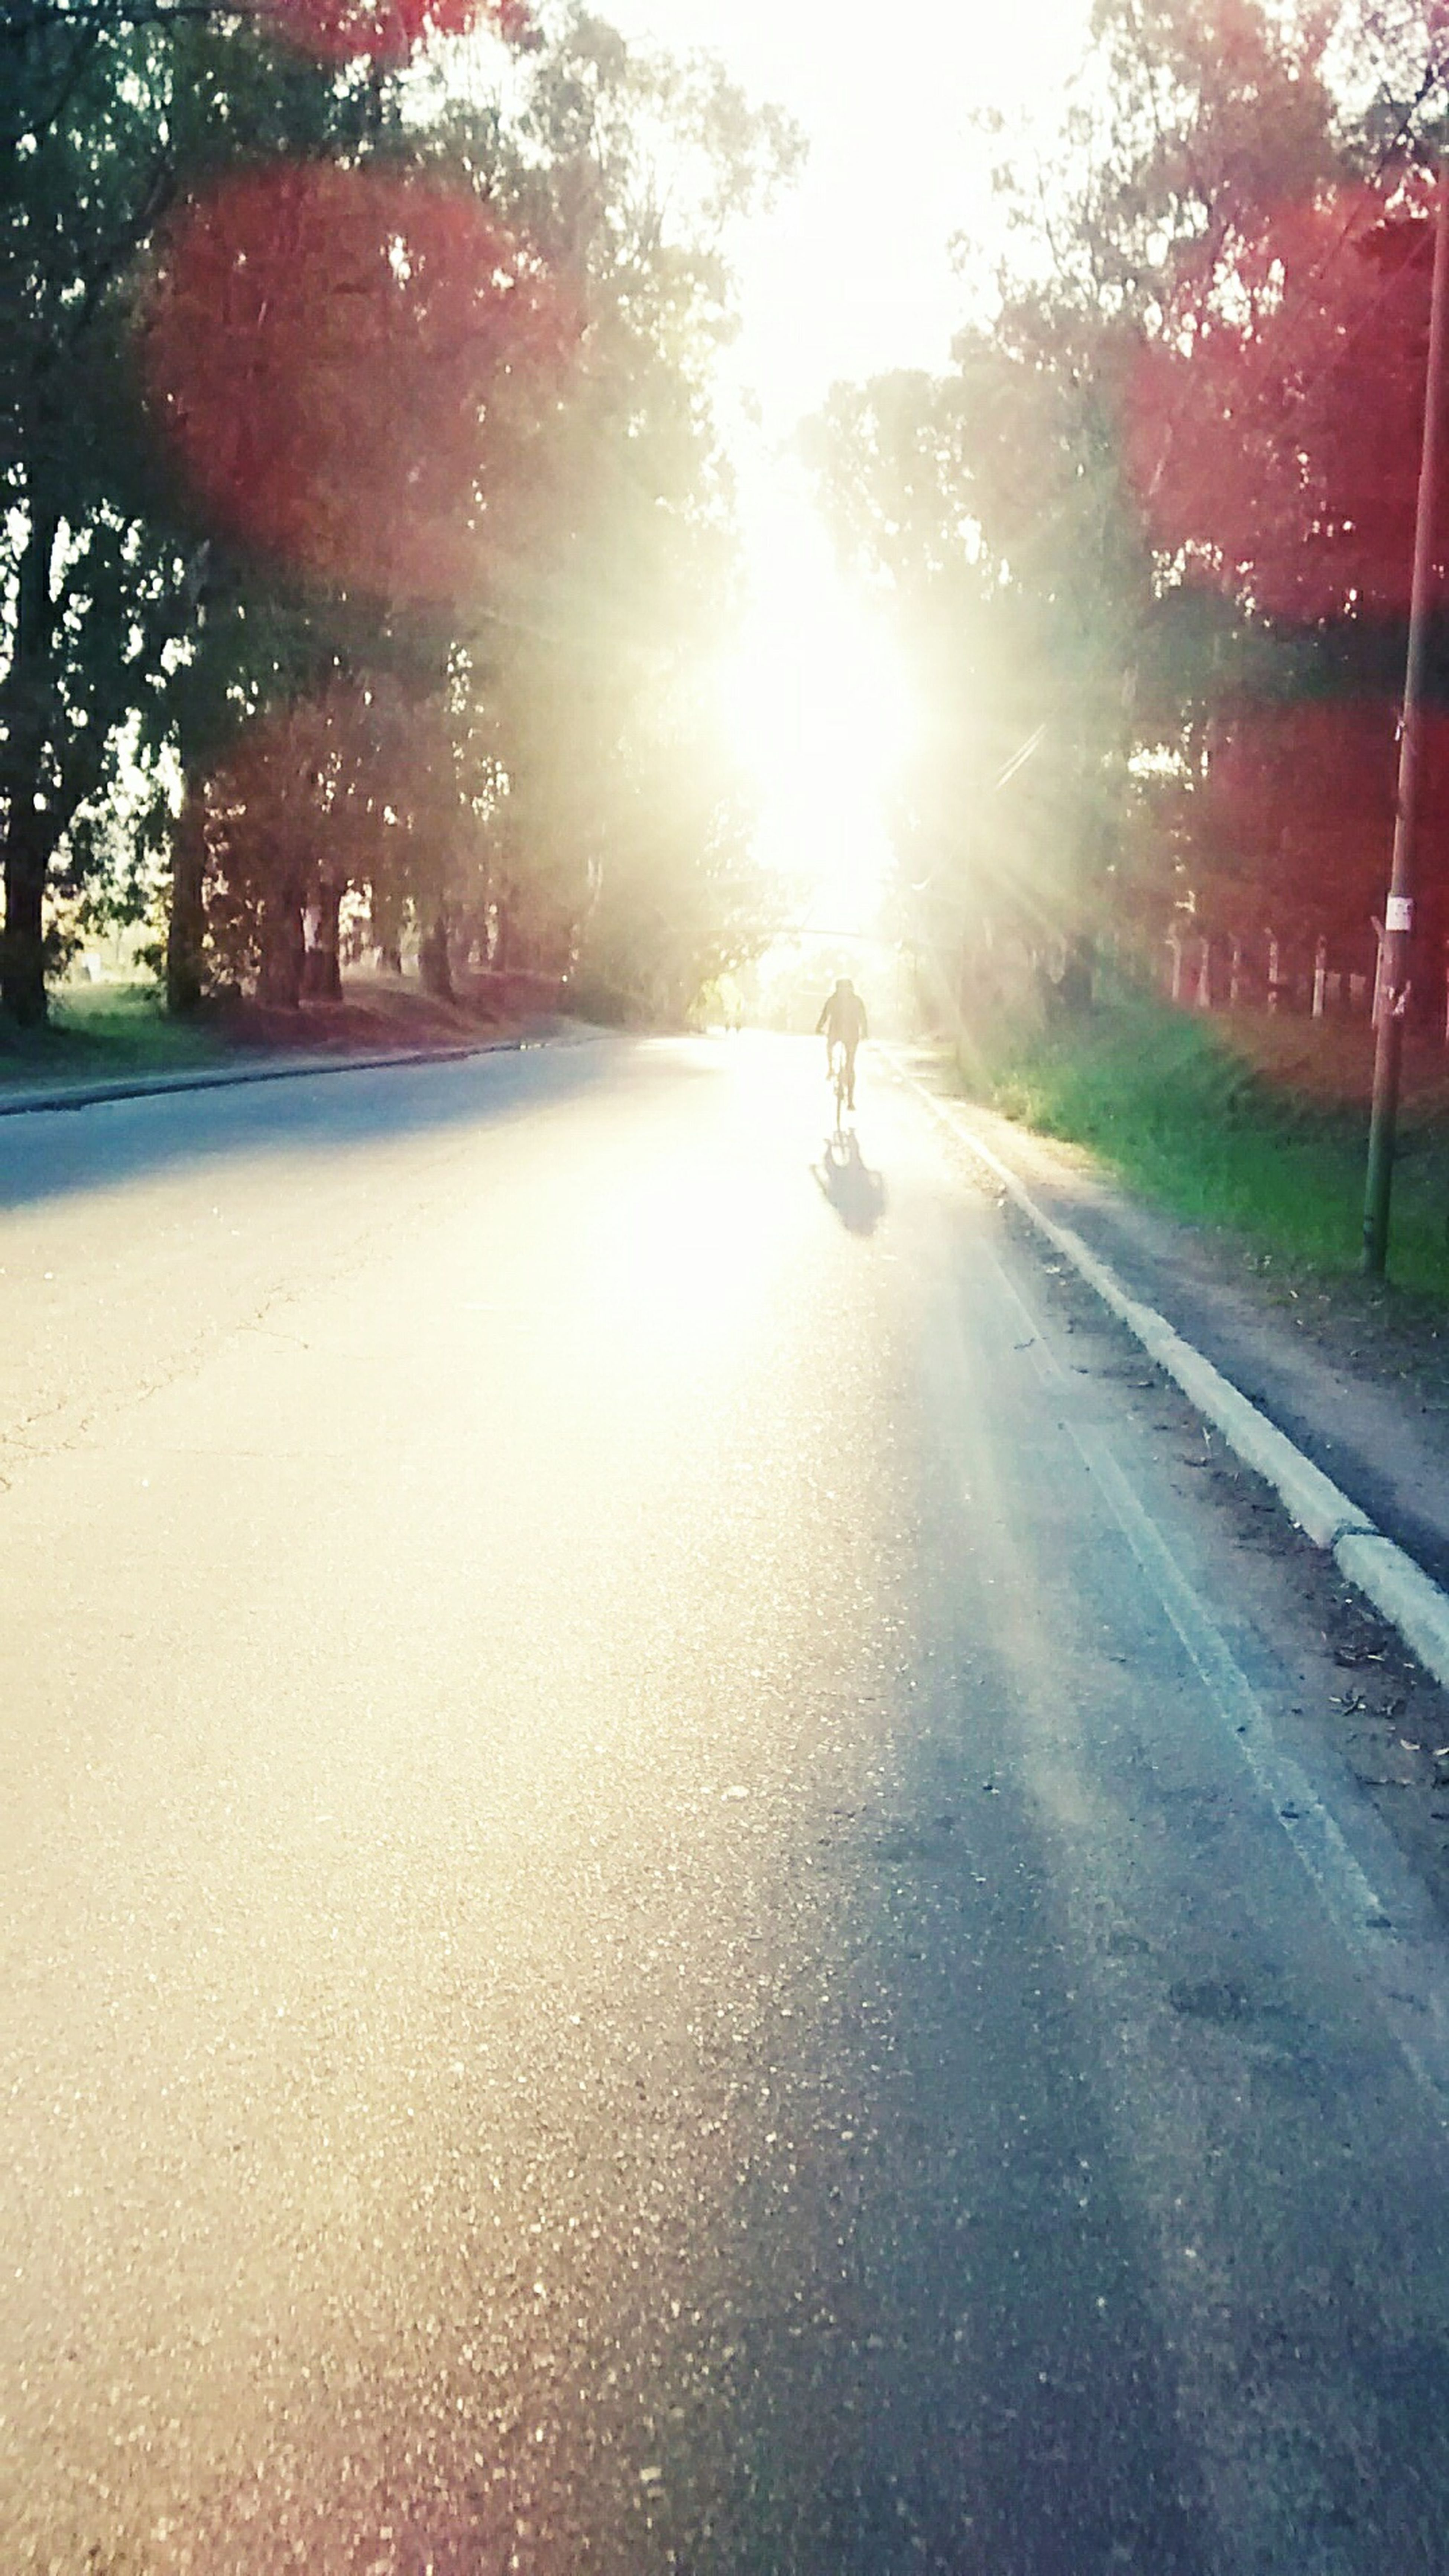 Walk Bike Sunset Friend